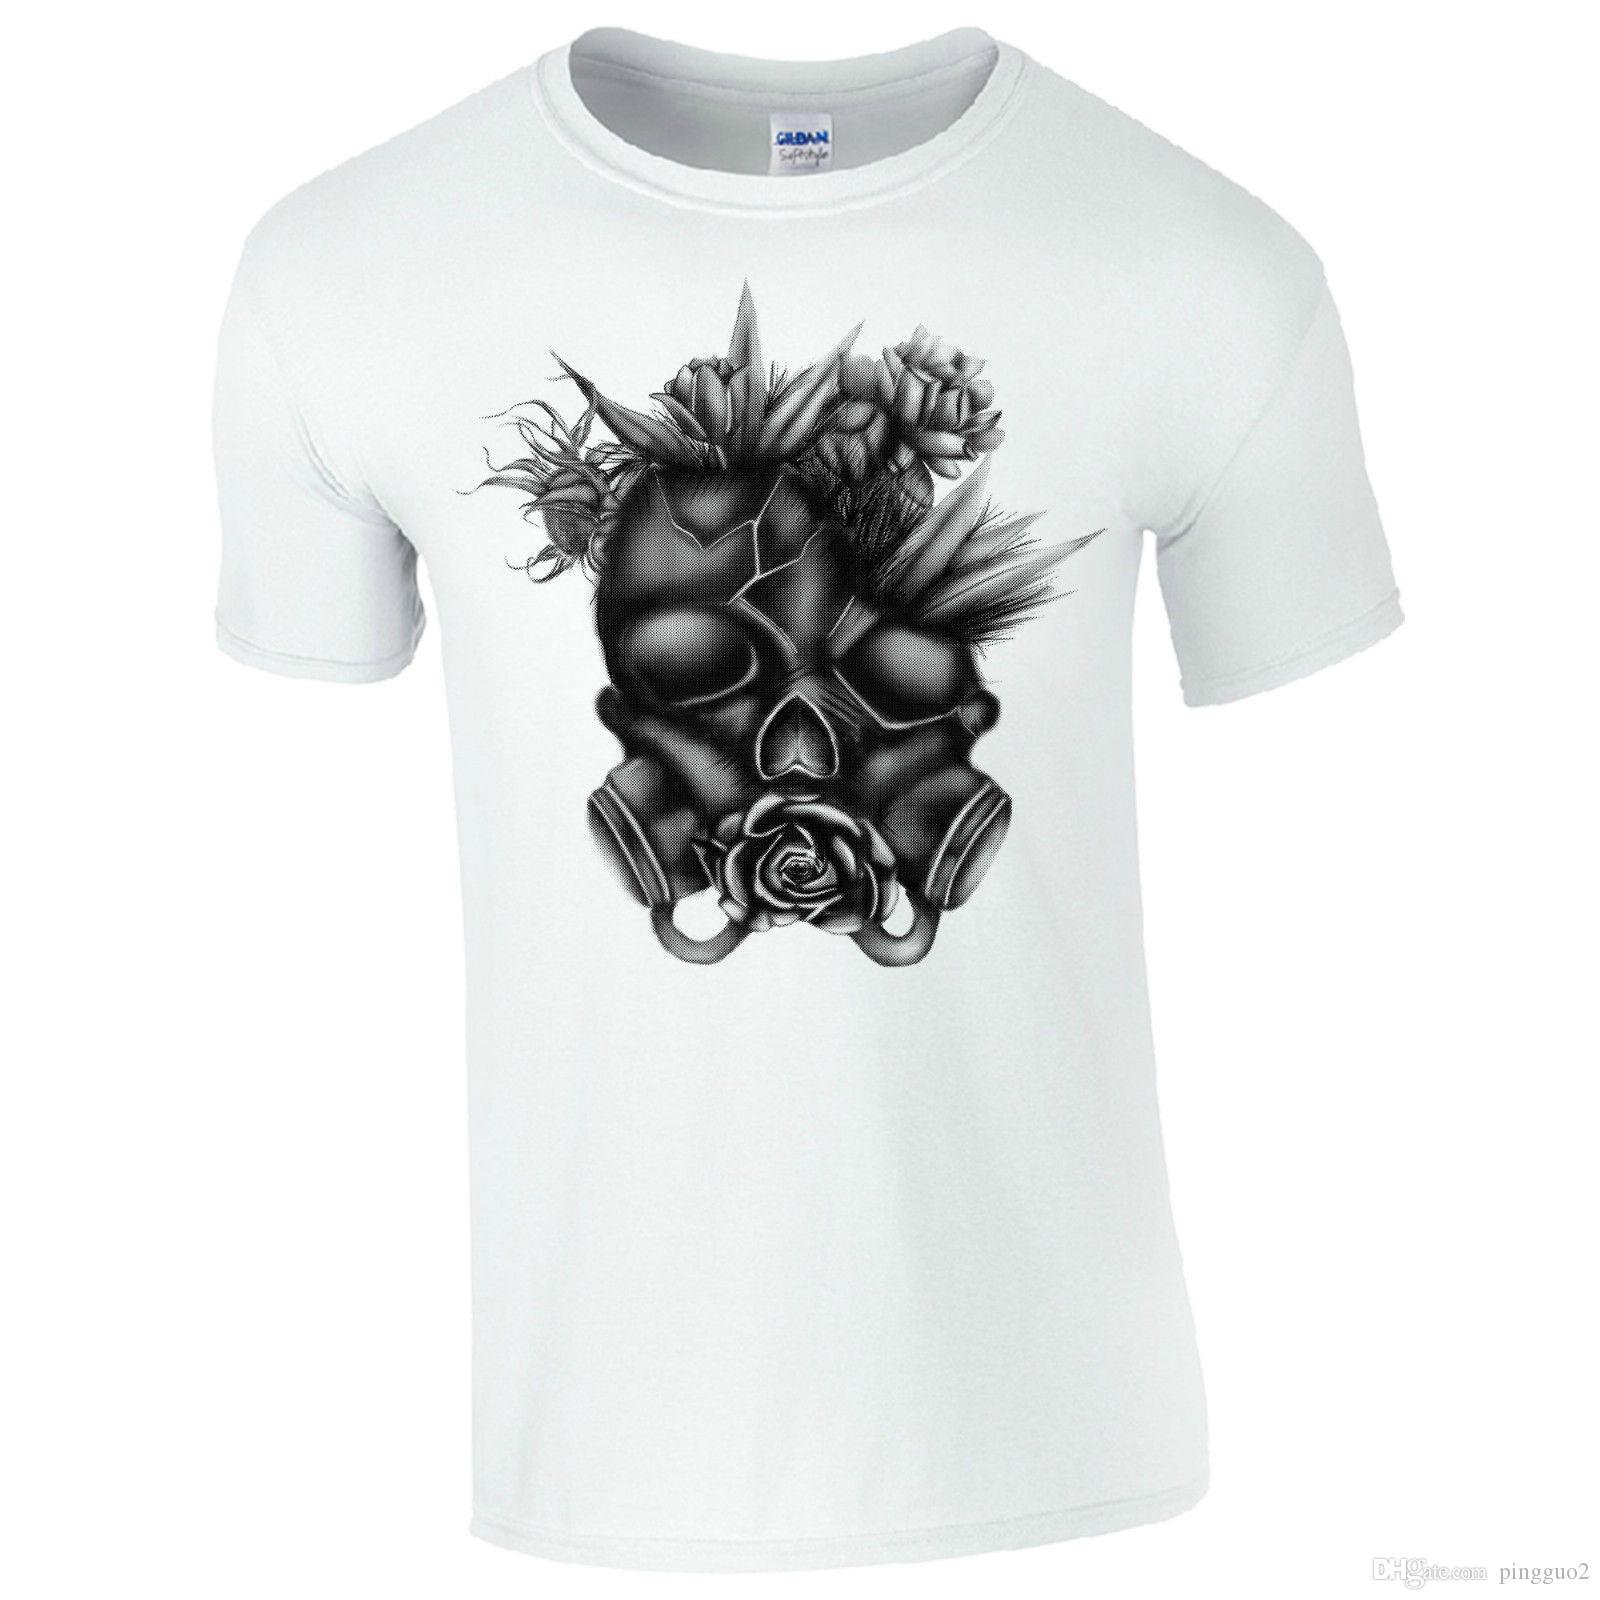 Back To Search Resultsmen's Clothing Tops & Tees Summer Fashion Men Cotton T Shirts Gas Mask Skull Man Round Neck Tops Black Size S-3xl Women Tshirt